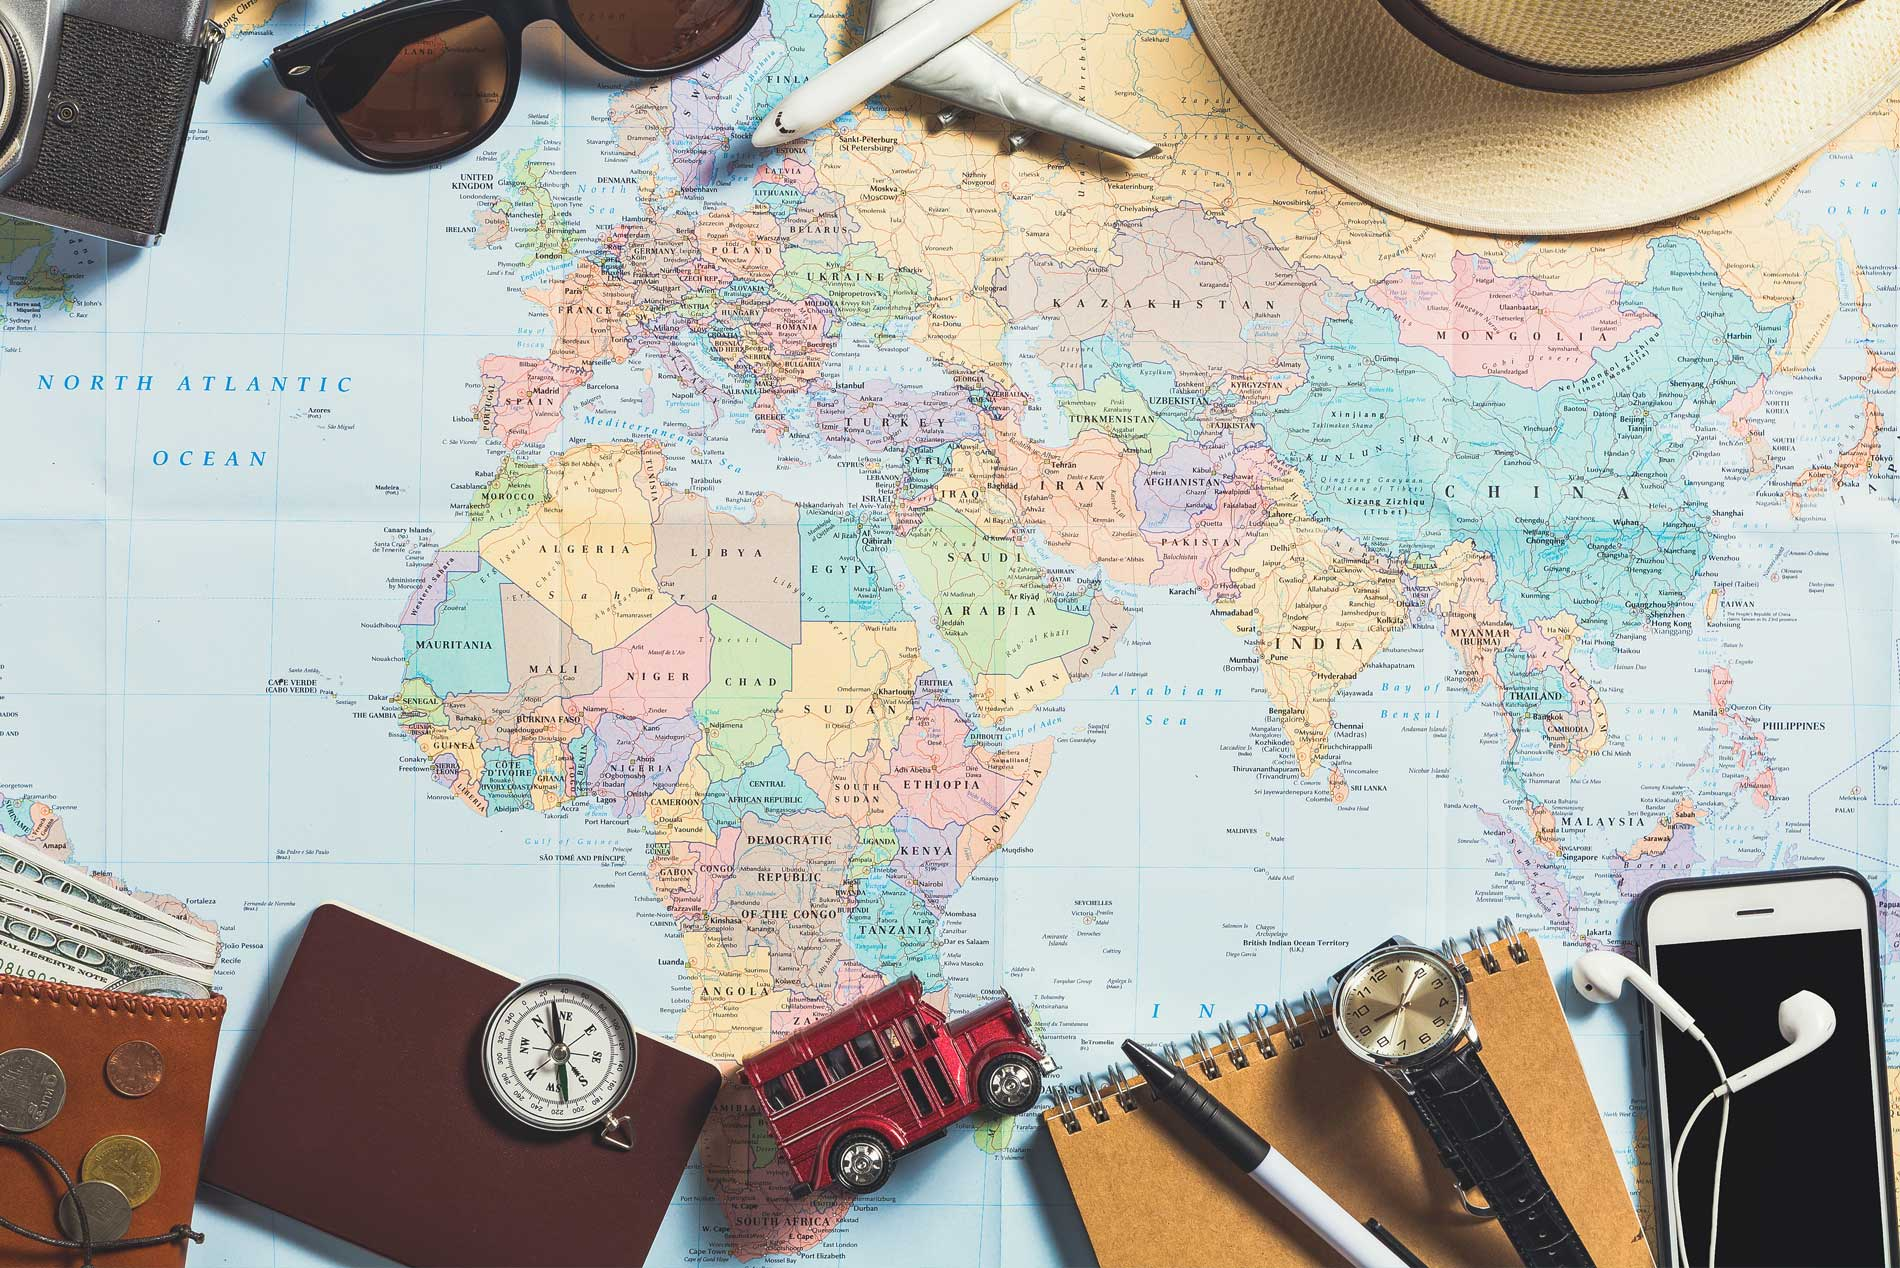 Photo of a world map with various travel elements like a passport, mobile phone, sunglasses and compass laying atop it.